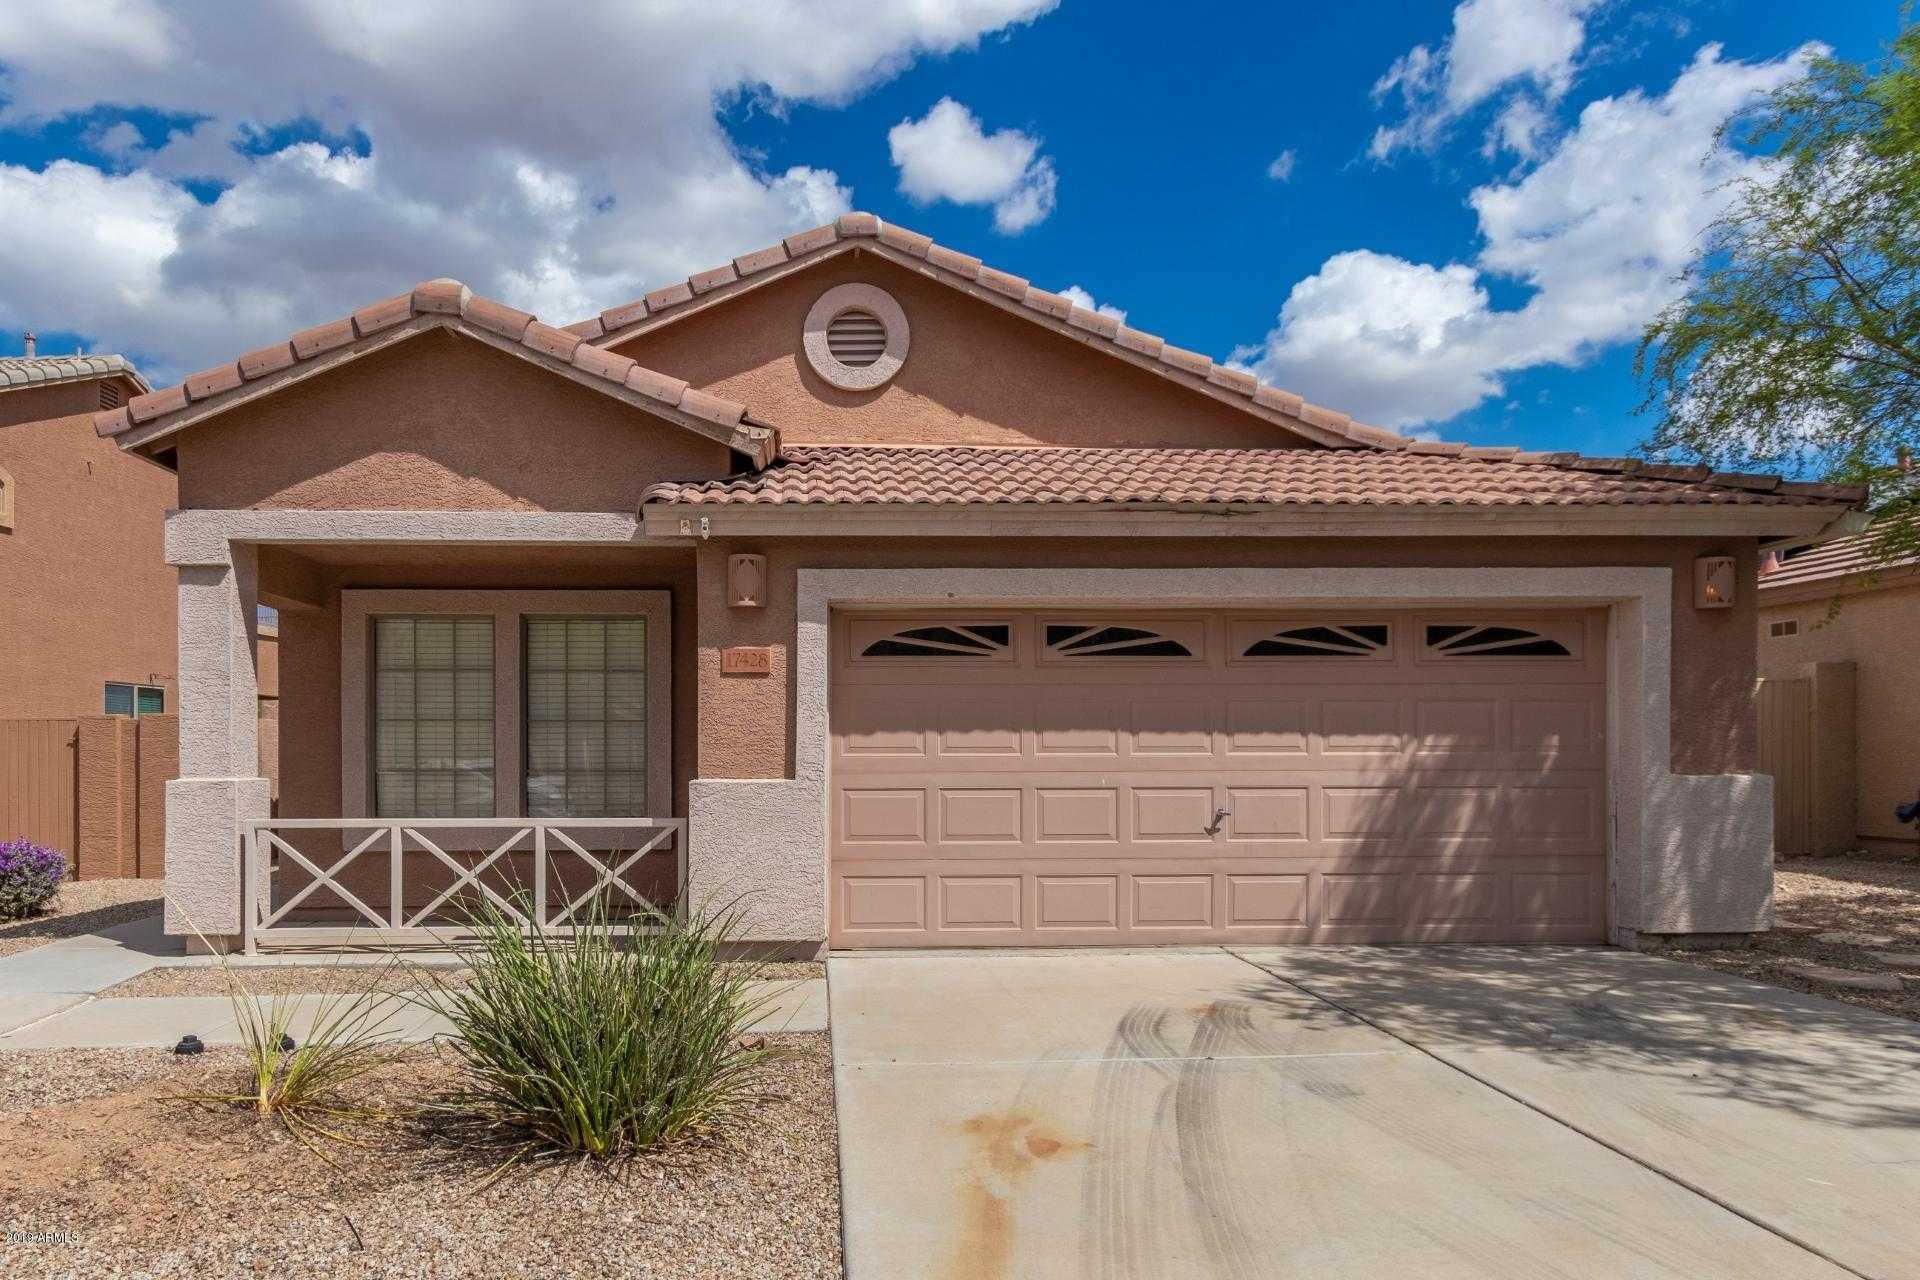 $275,000 - 4Br/2Ba - Home for Sale in Estrella Mountain Ranch Parcel 26, Goodyear